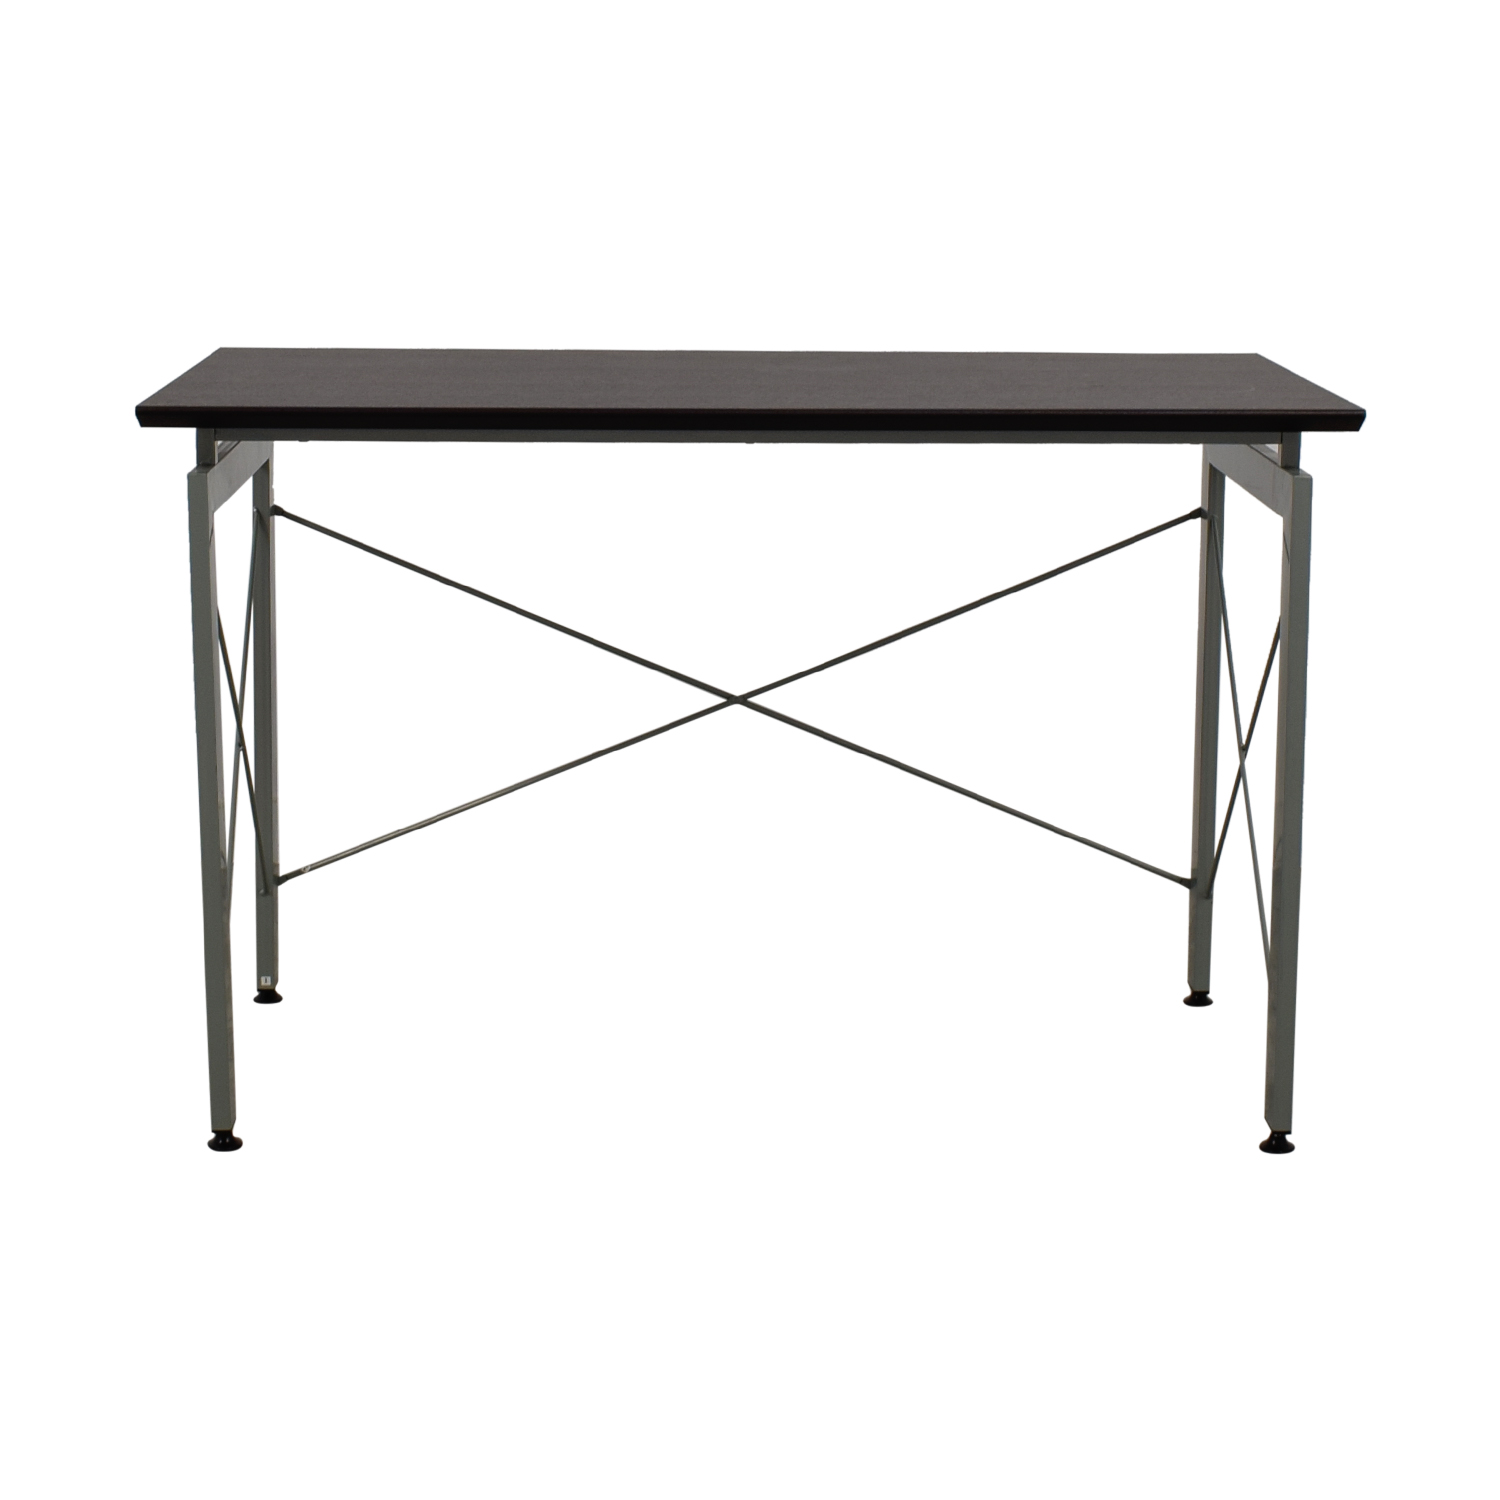 Metal and Wood Desk dimensions